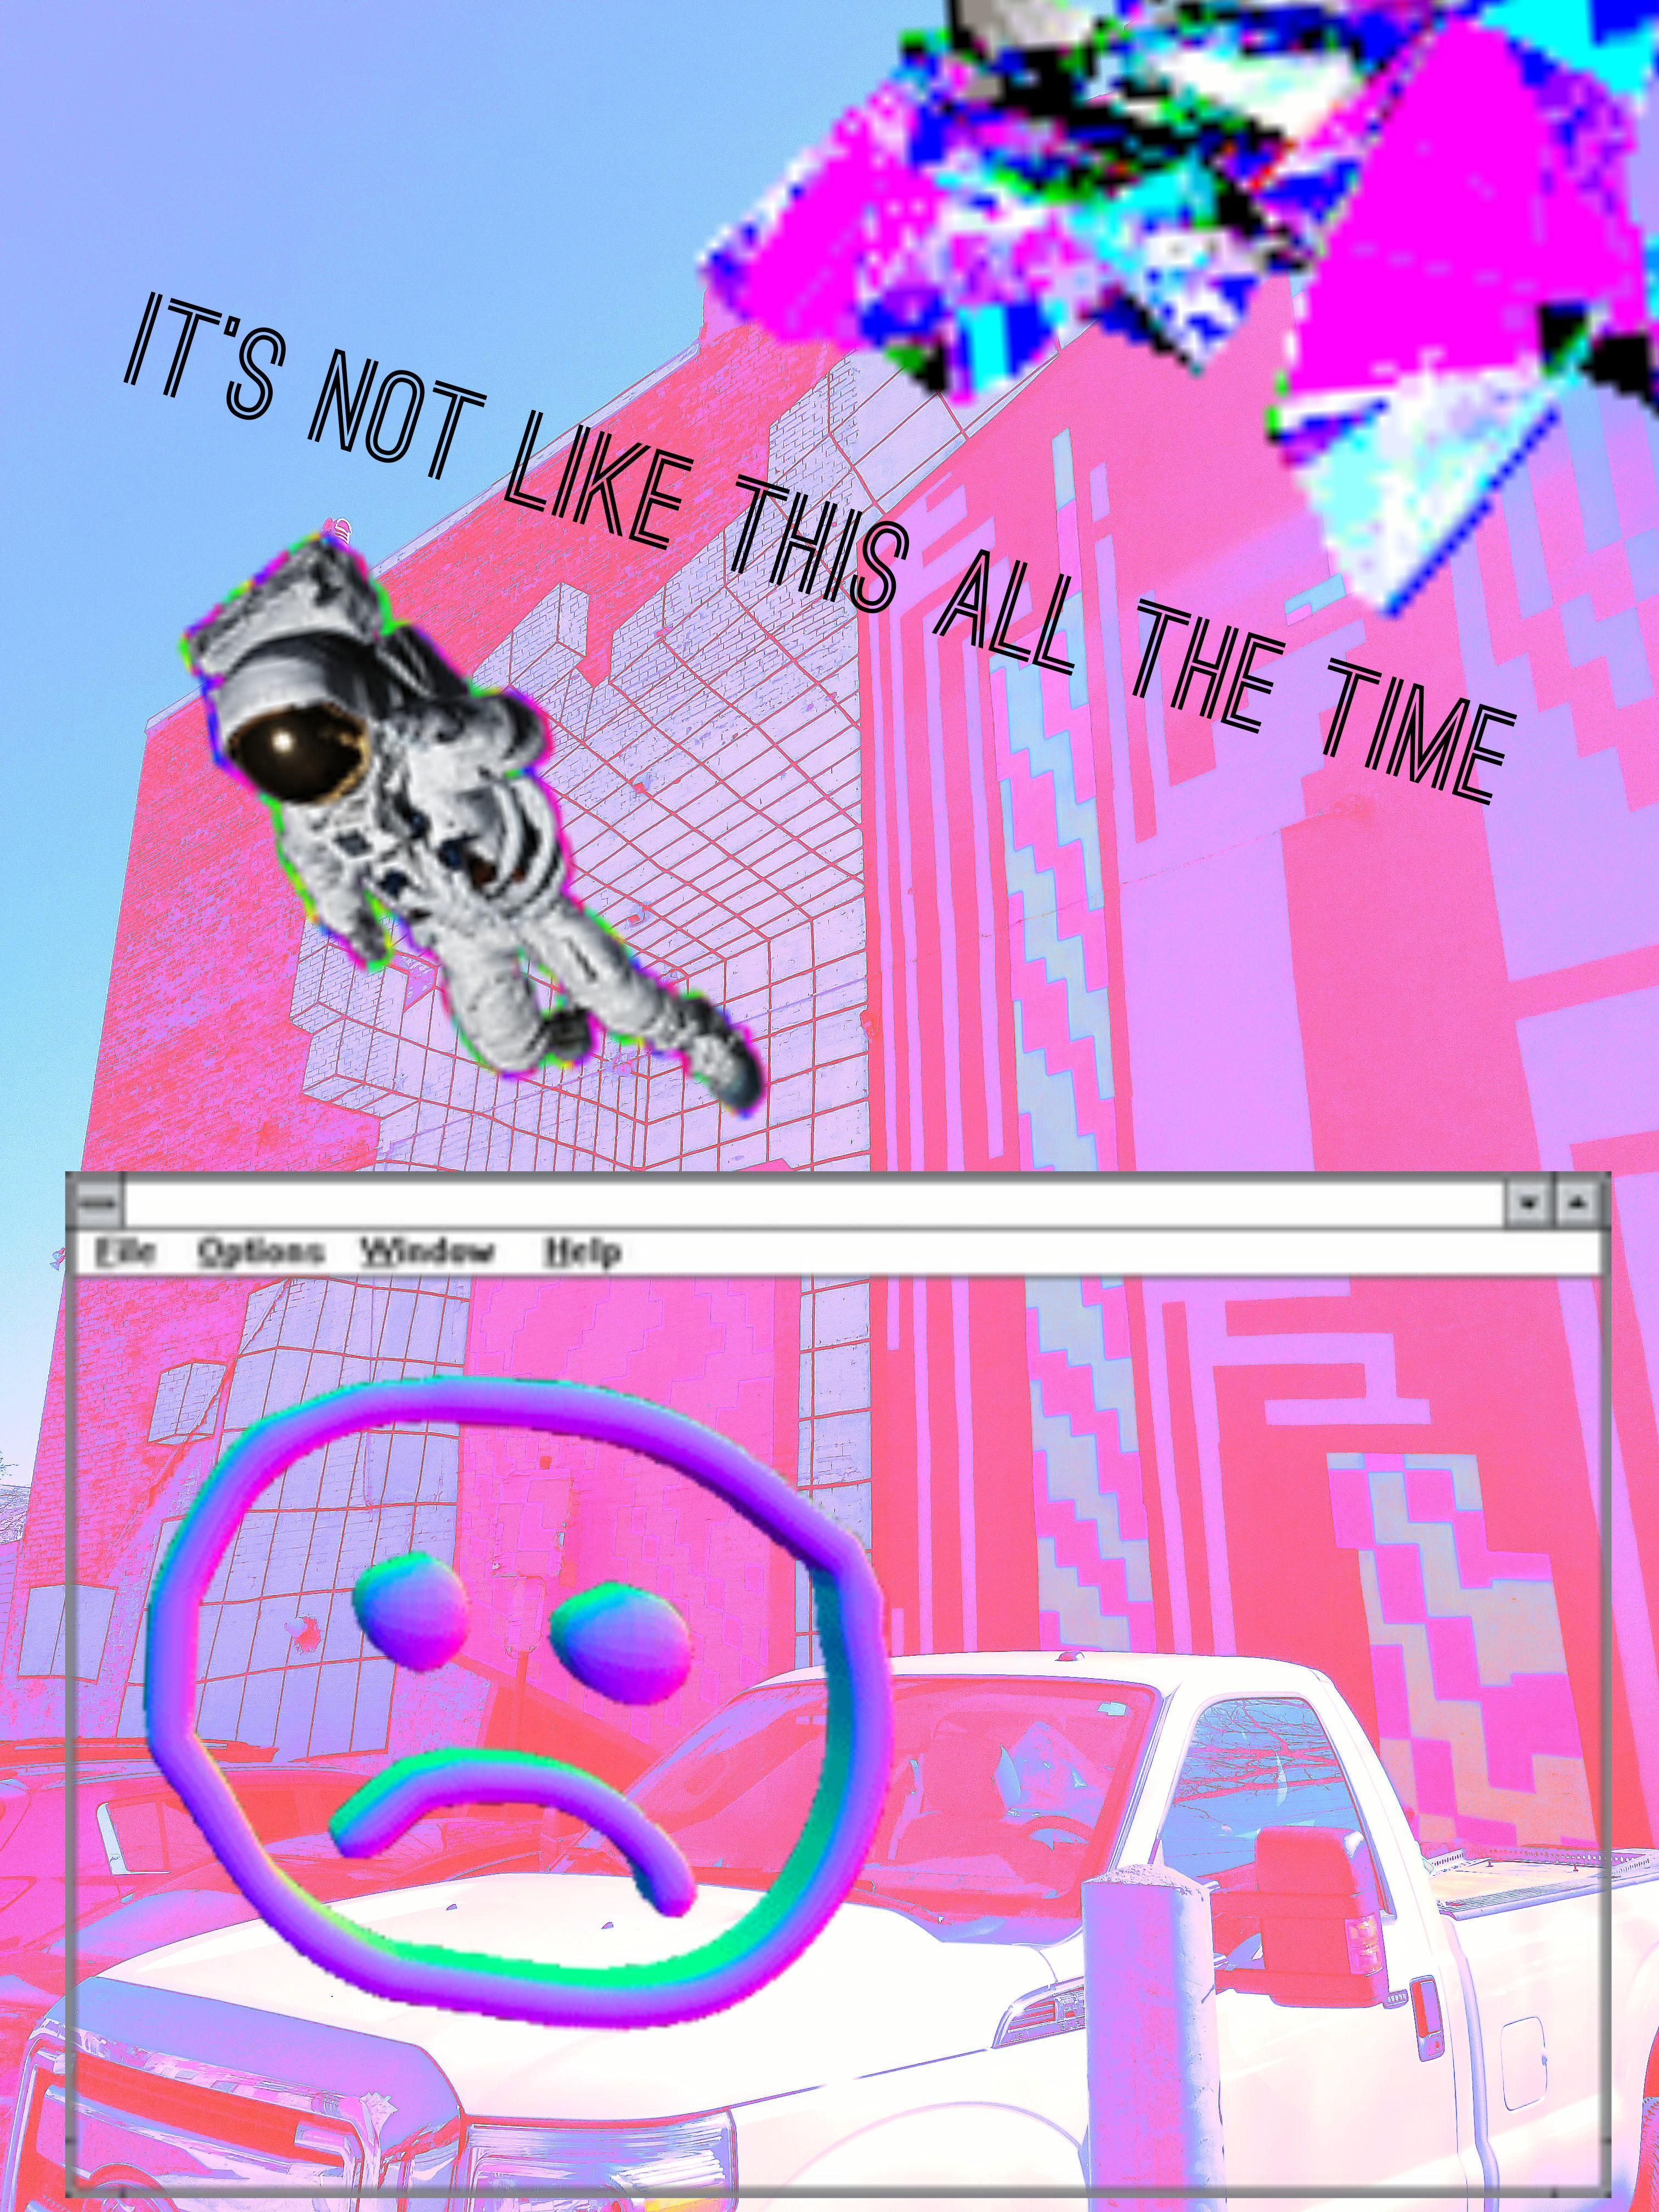 Art Therapy Vhs 90s Analog Nostalgic Cyberpunk Surrealism Pop Culture Synthwave Vaporwave Glitch Aes Aesthetic Wallpapers Retro Aesthetic Vaporwave